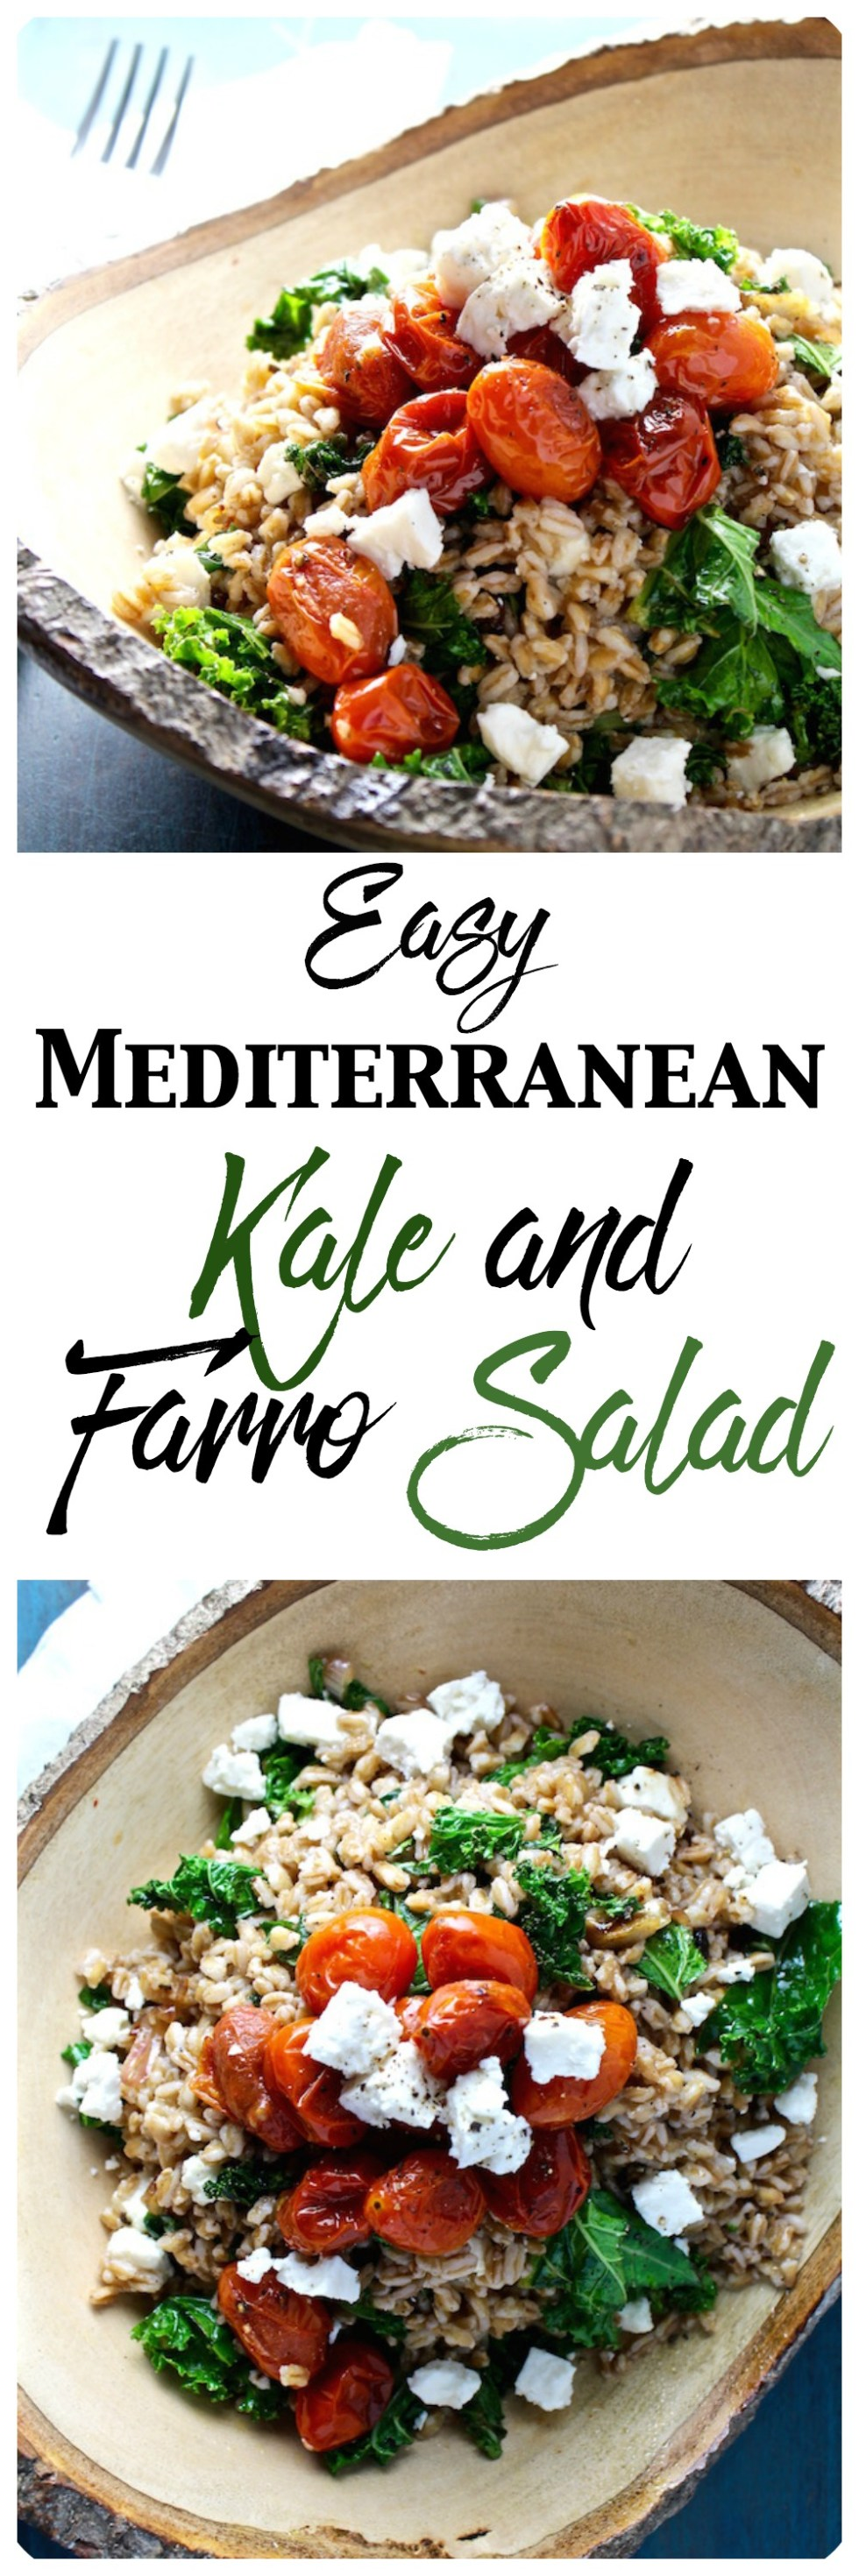 easy kale and mediterranean kale and farro salad pinterest